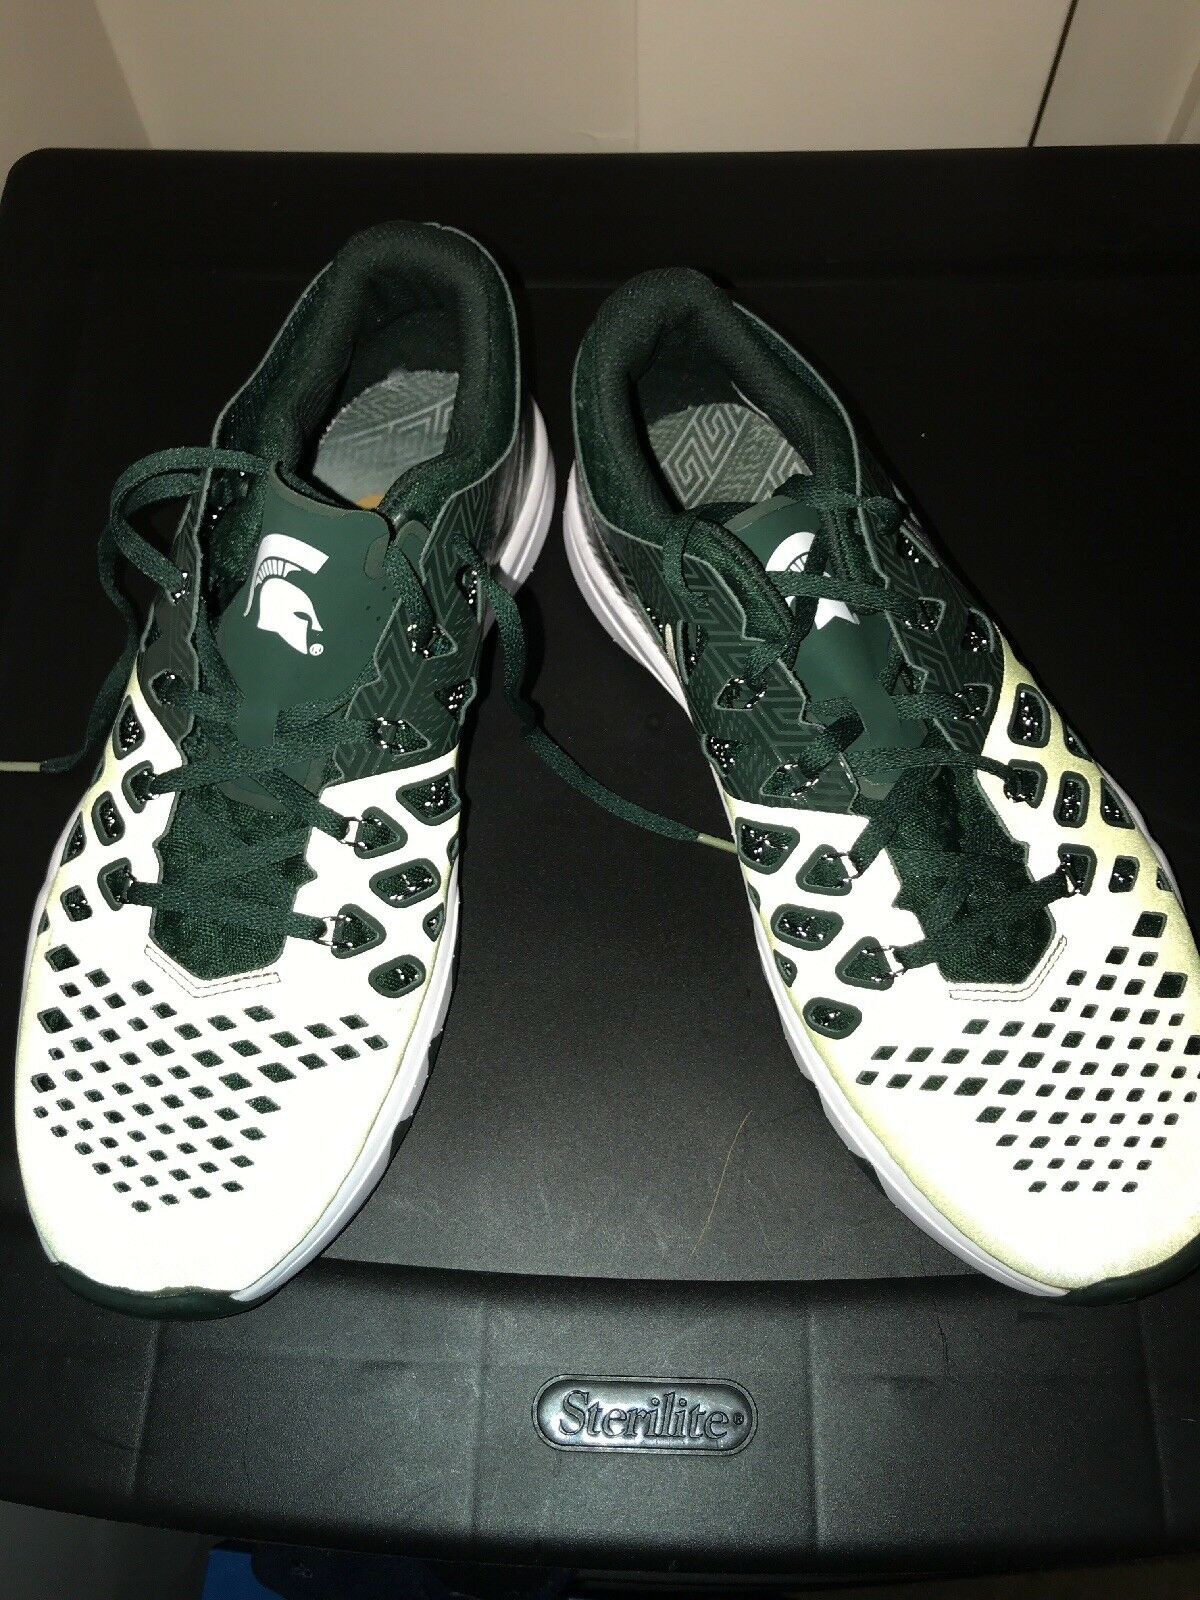 Nike Train Speed 4 AMP Shoes Michigan State Spartans 844102 309 Men's Size 9.5